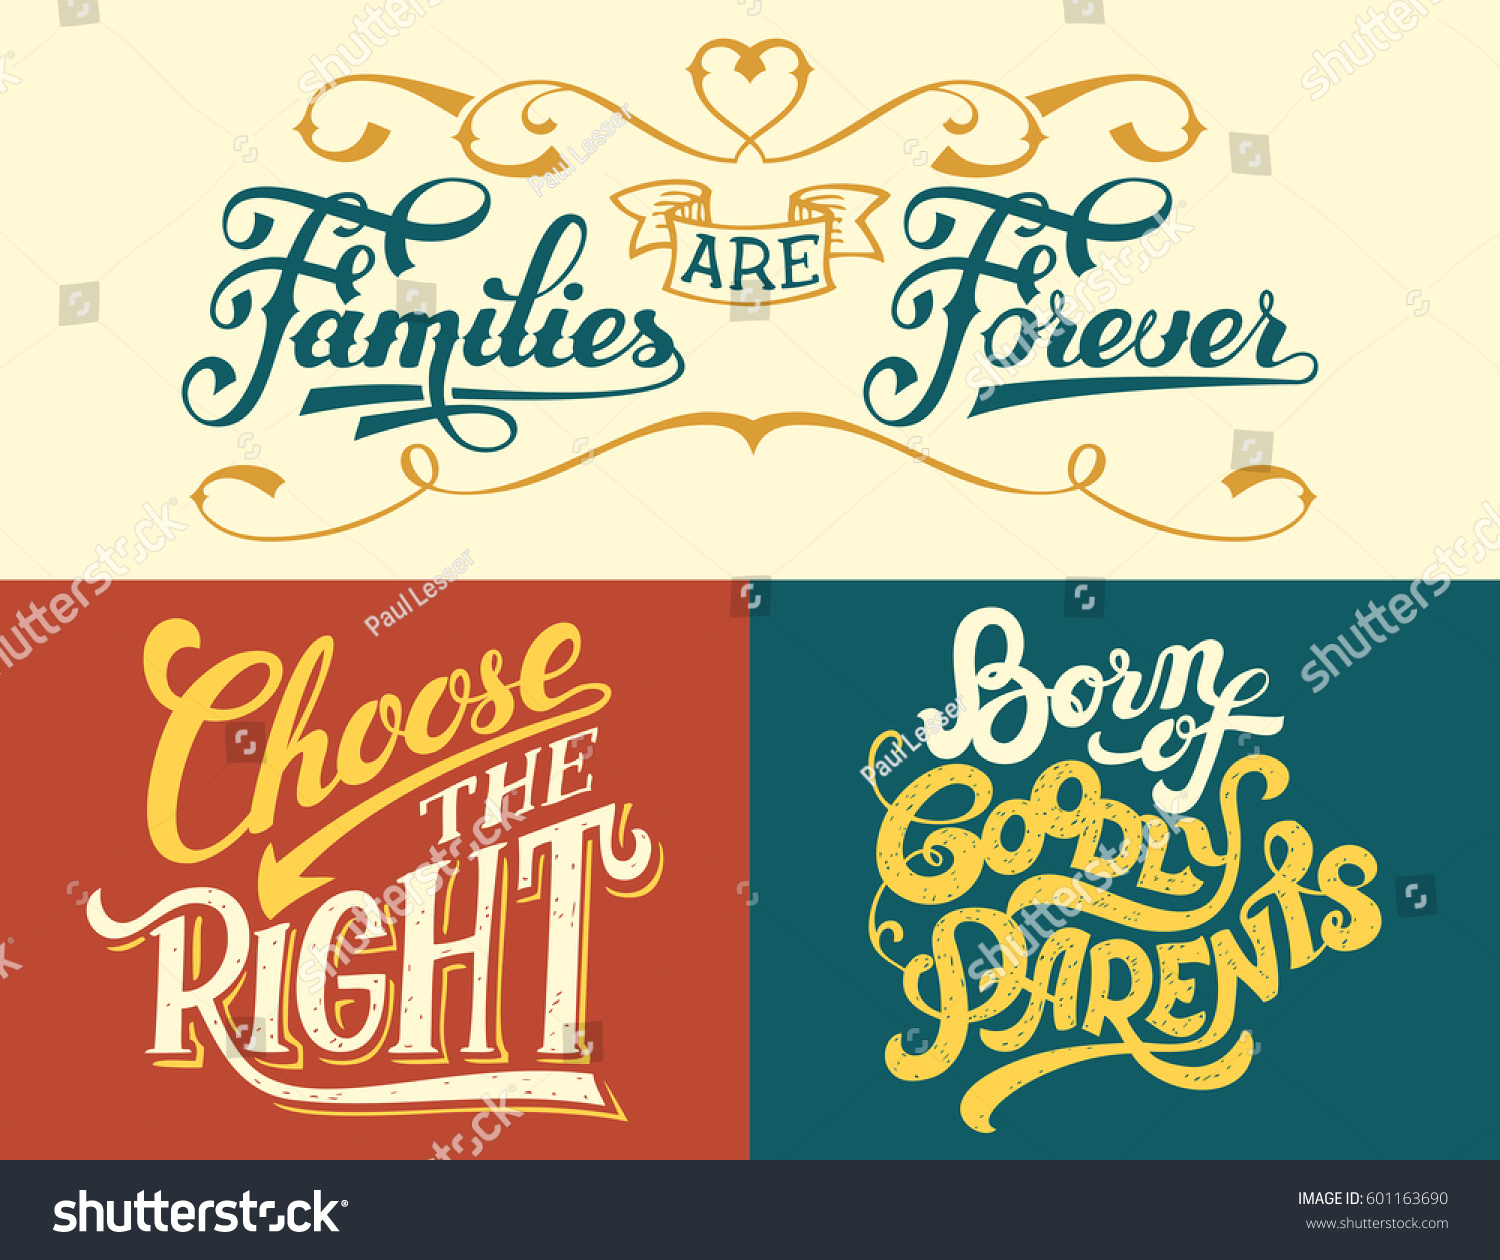 Family Is Forever Quotes Families Forever Born Goodly Parents Choose Stock Vector 601163690